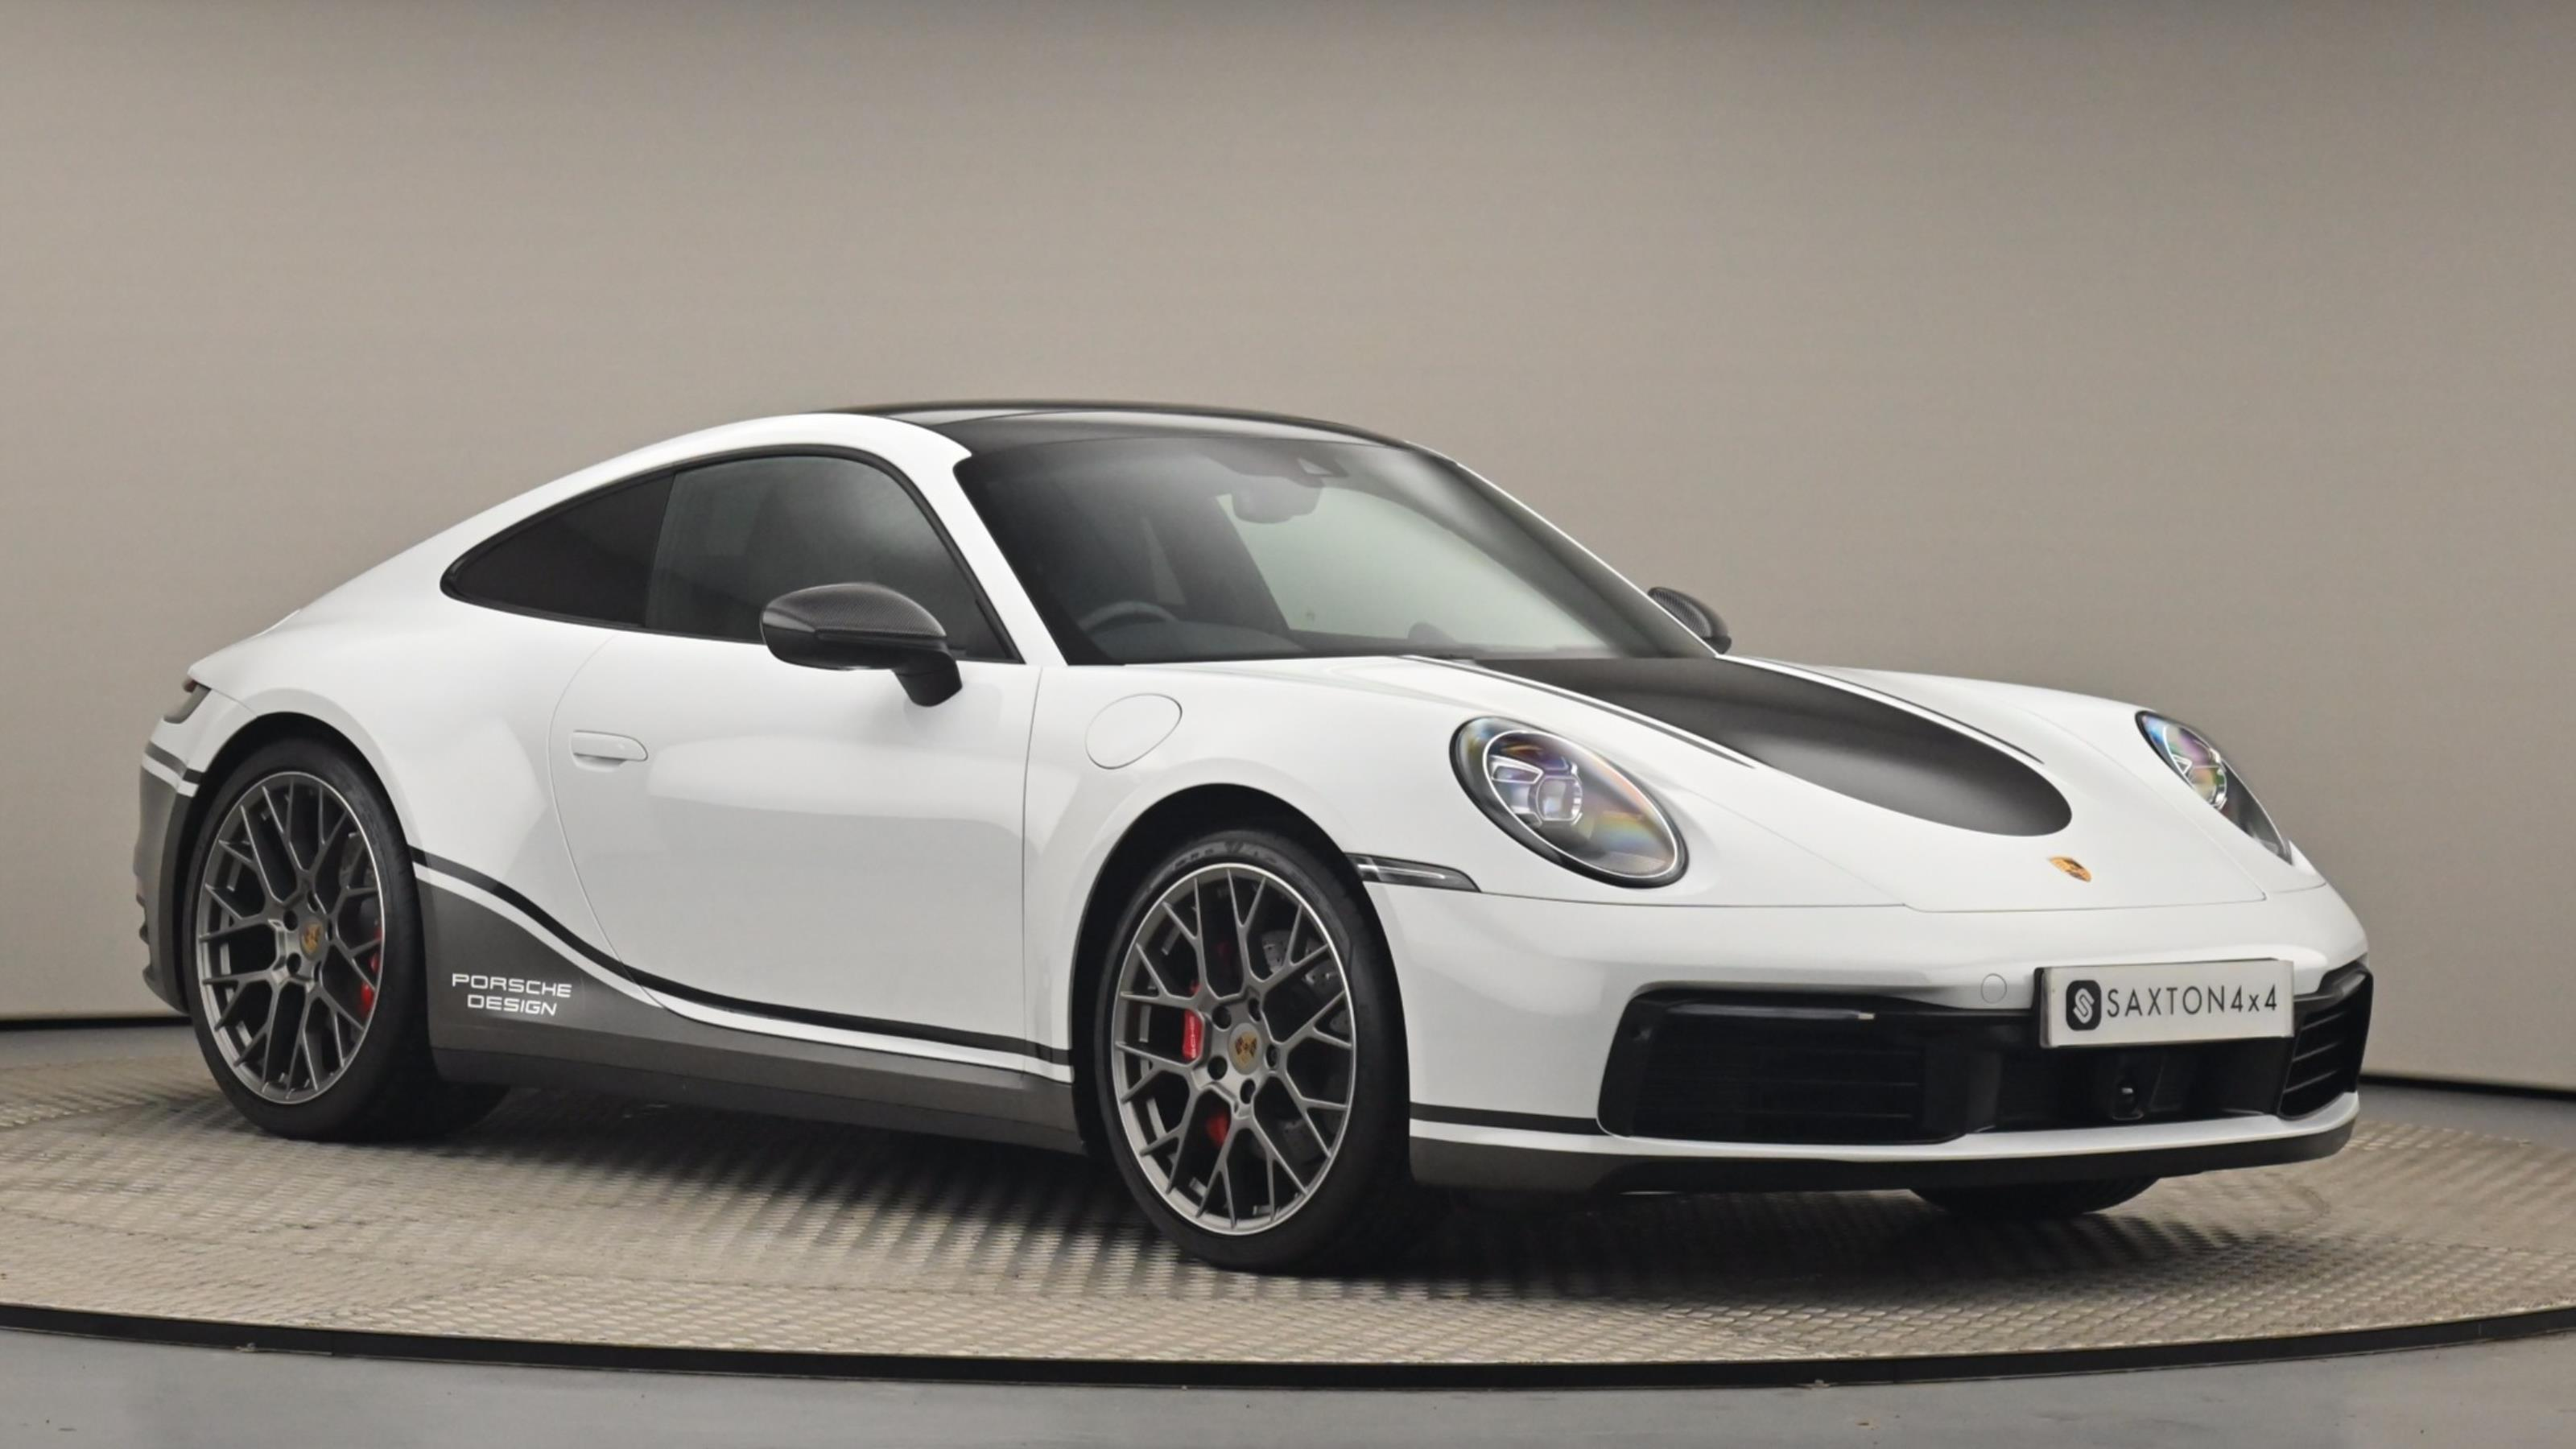 Used 2019 Porsche 911 S 2dr PDK WHITE at Saxton4x4